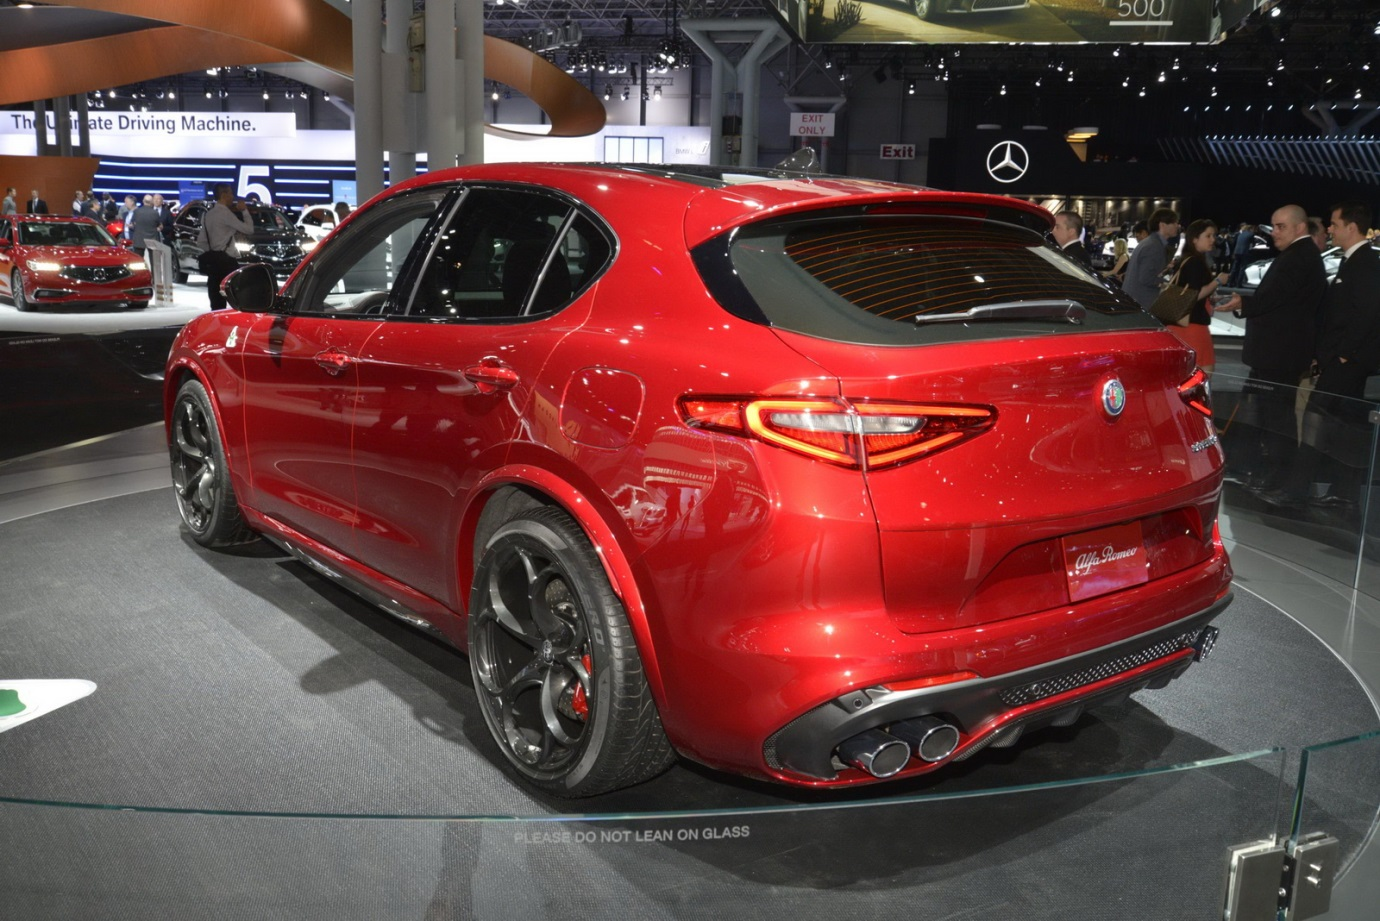 Alfa Romeo Stelvio Quadrifoglio Usa Ms Blog Umbrella And It Has The Power To Do So As With Badge Comes A 29 Liter Twin Turbo V6 Engine Which Is Shared Range Topping Version Of